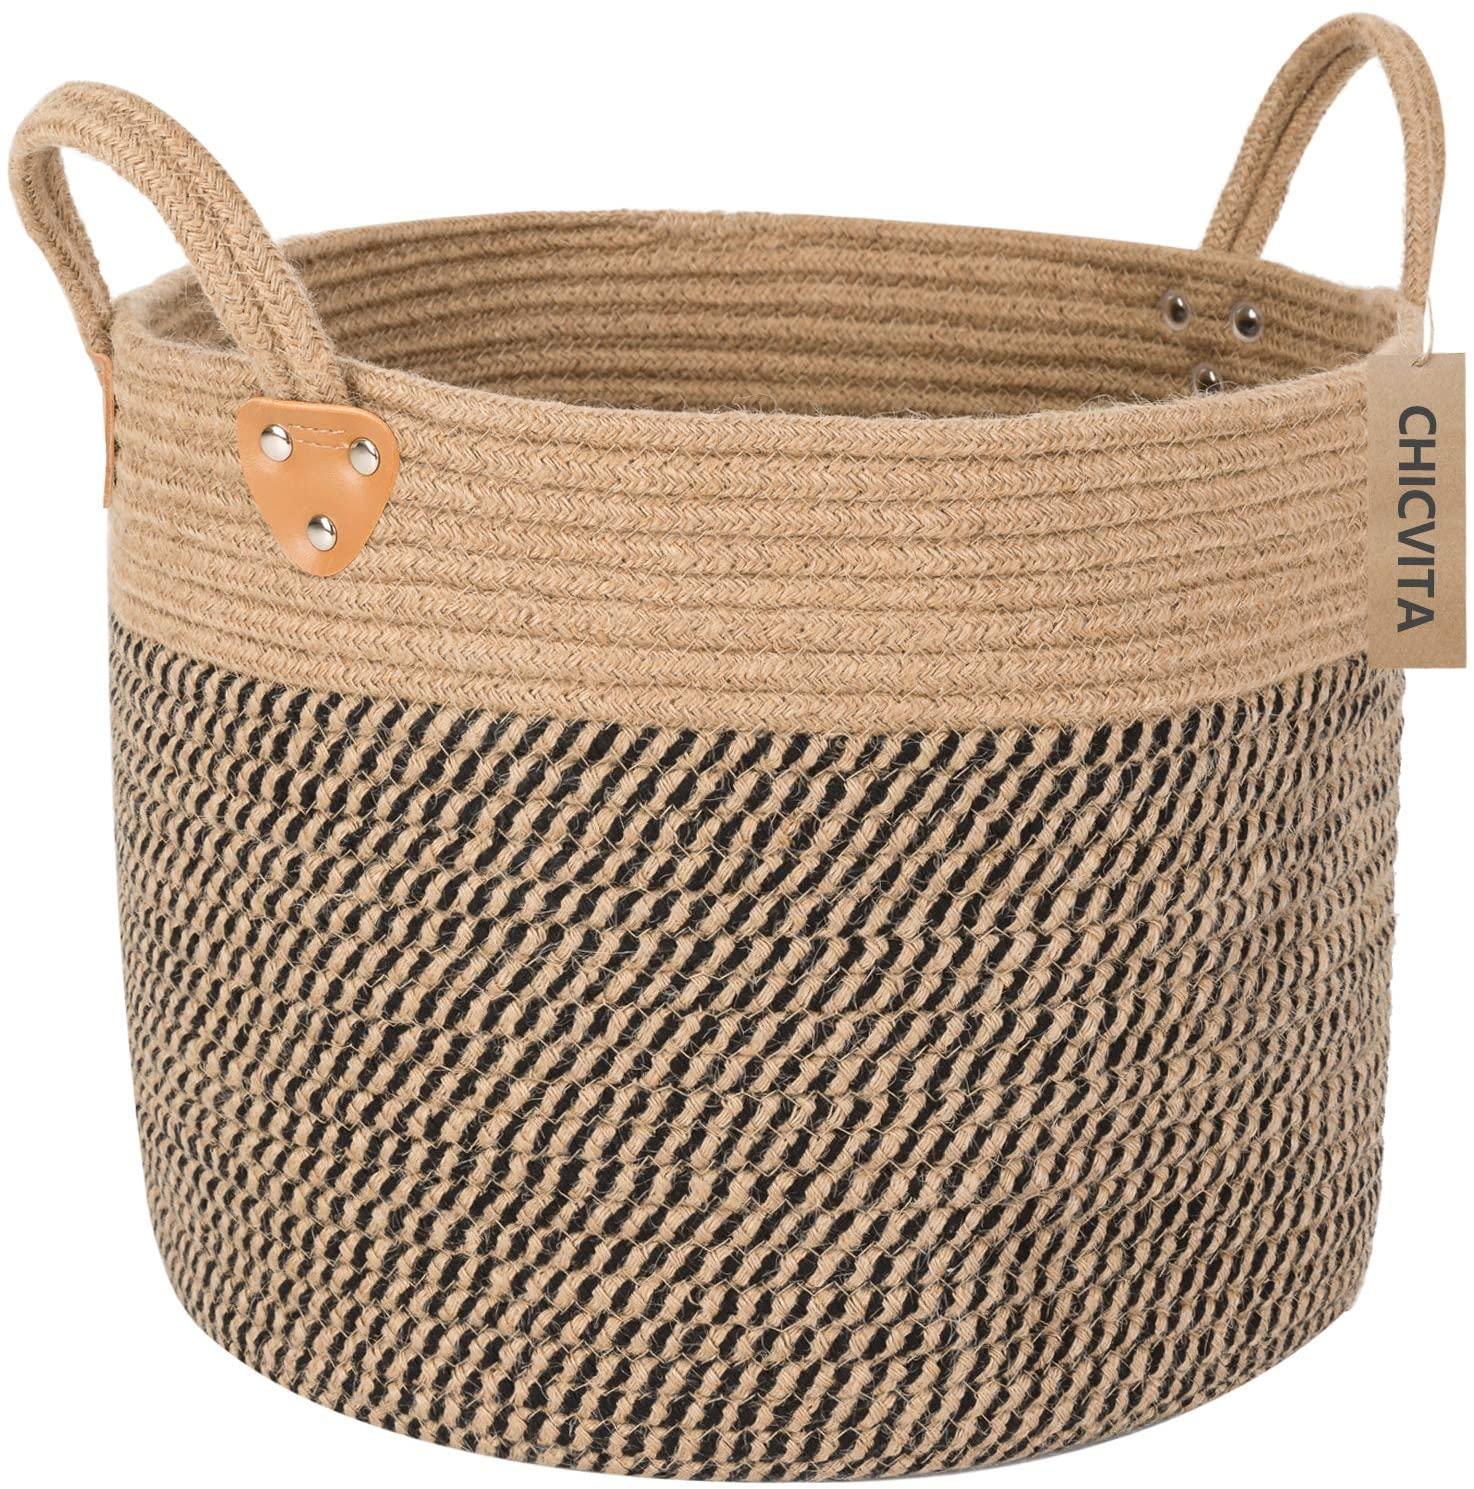 CHICVITA Large Jute Basket Woven Storage Basket with Handles